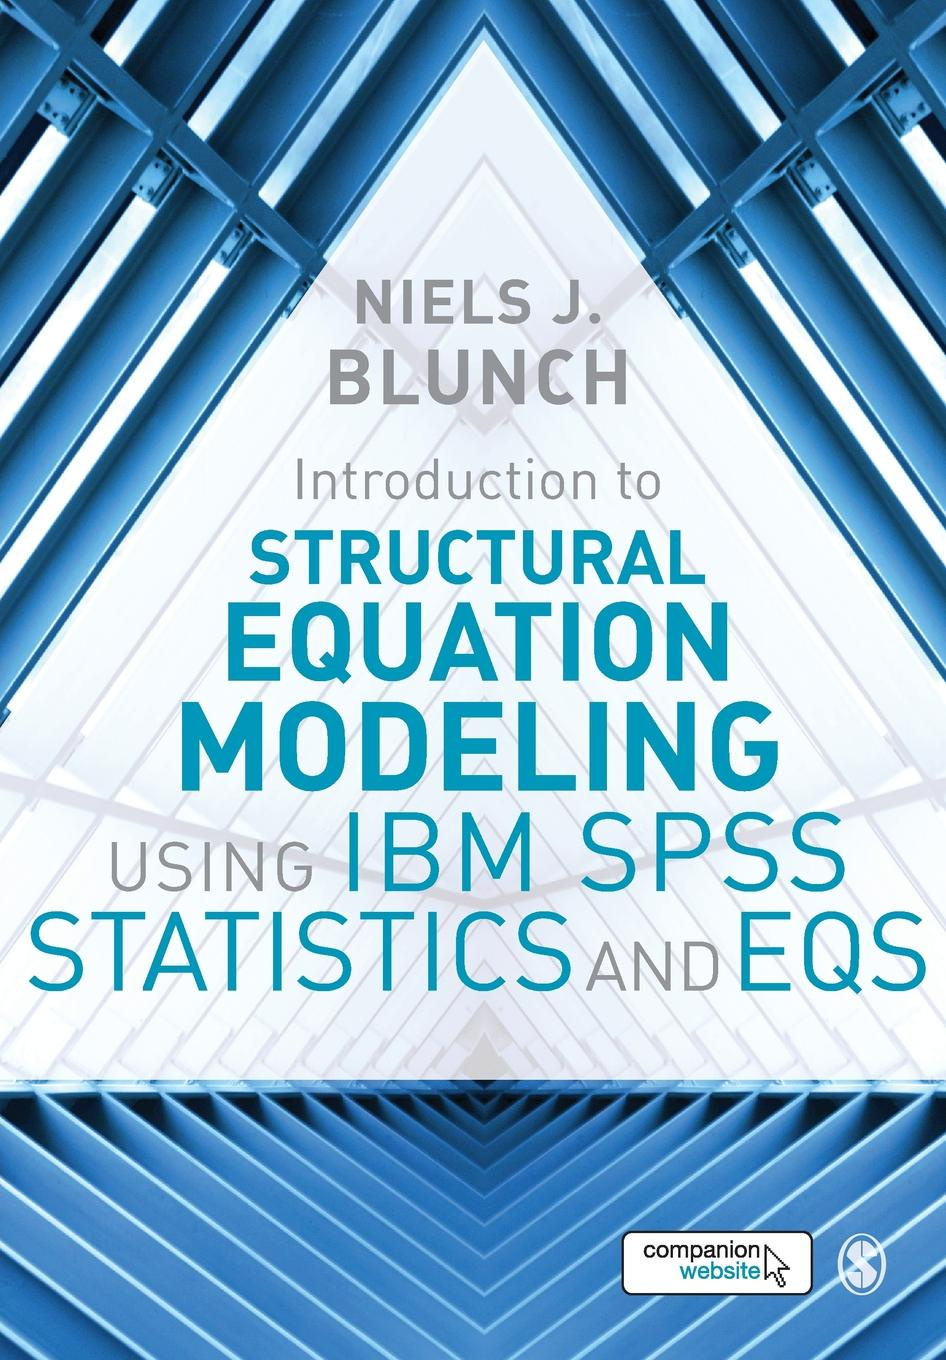 Niels J Blunch Introduction to Structural Equation Modeling Using IBM SPSS Statistics and EQS michael crawley j statistics an introduction using r